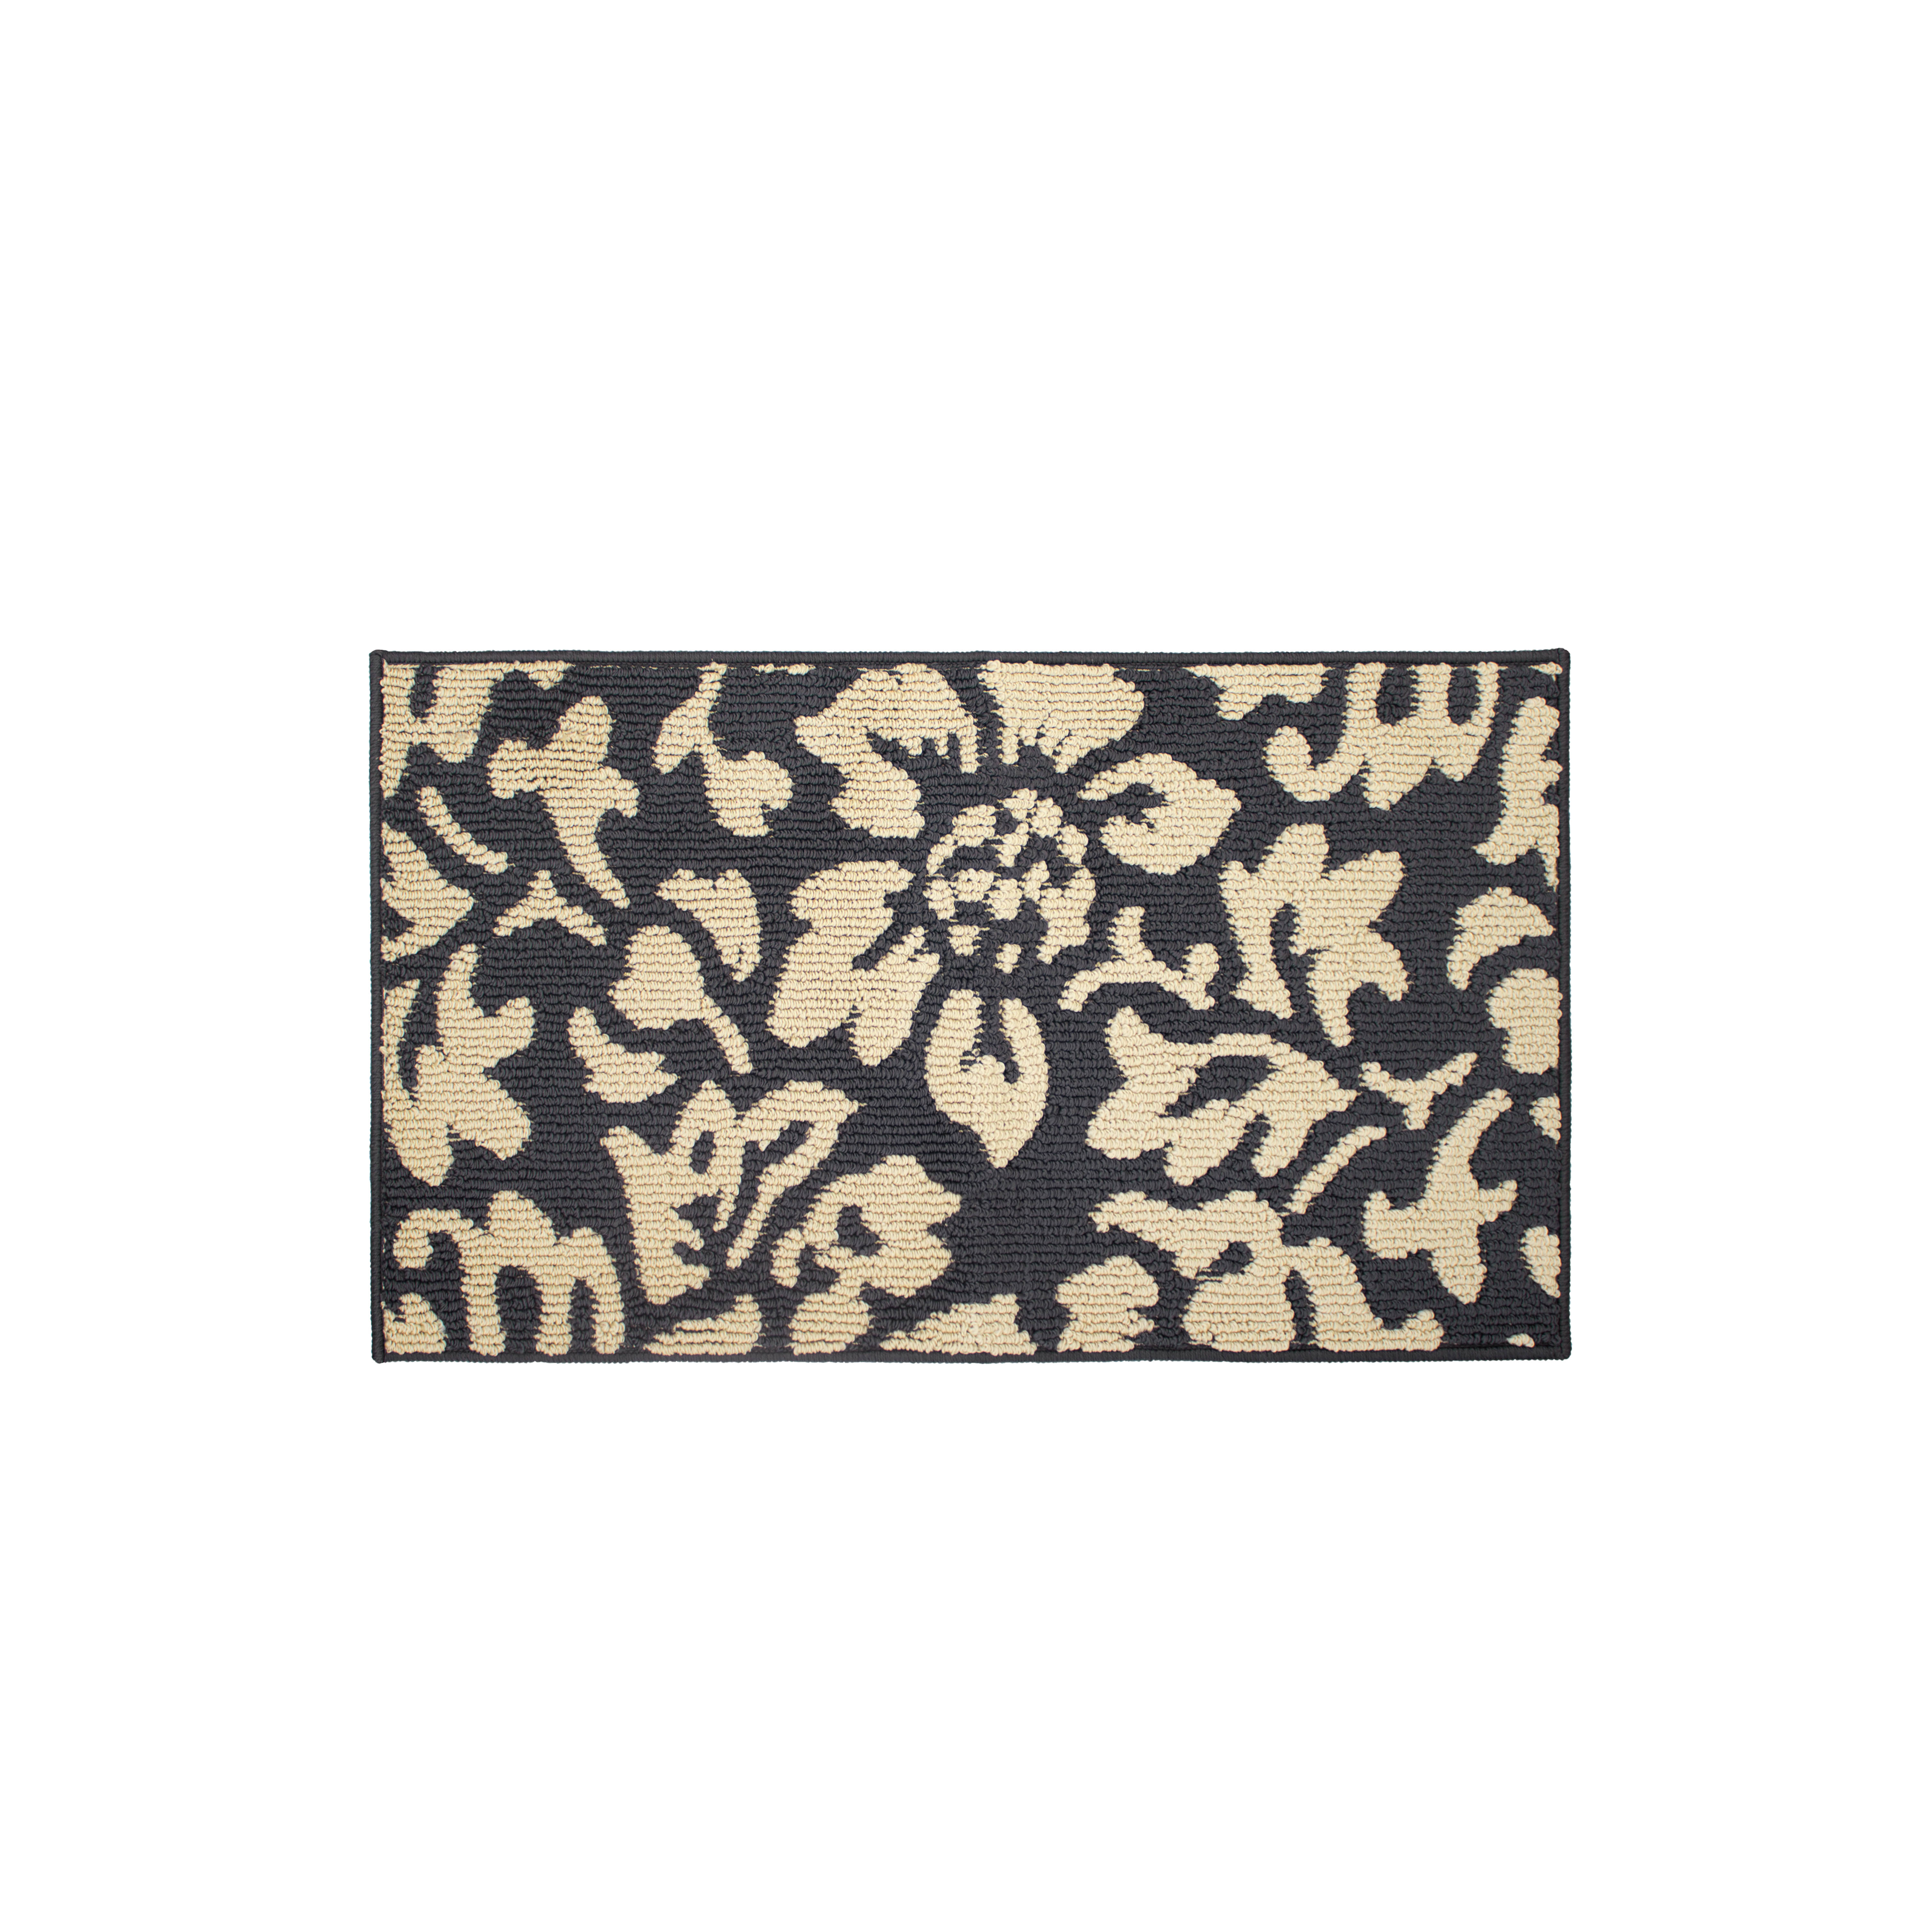 Jean Pierre Formoso 20 x 34 in. Loop Accent Rug by YMF Carpets Inc.